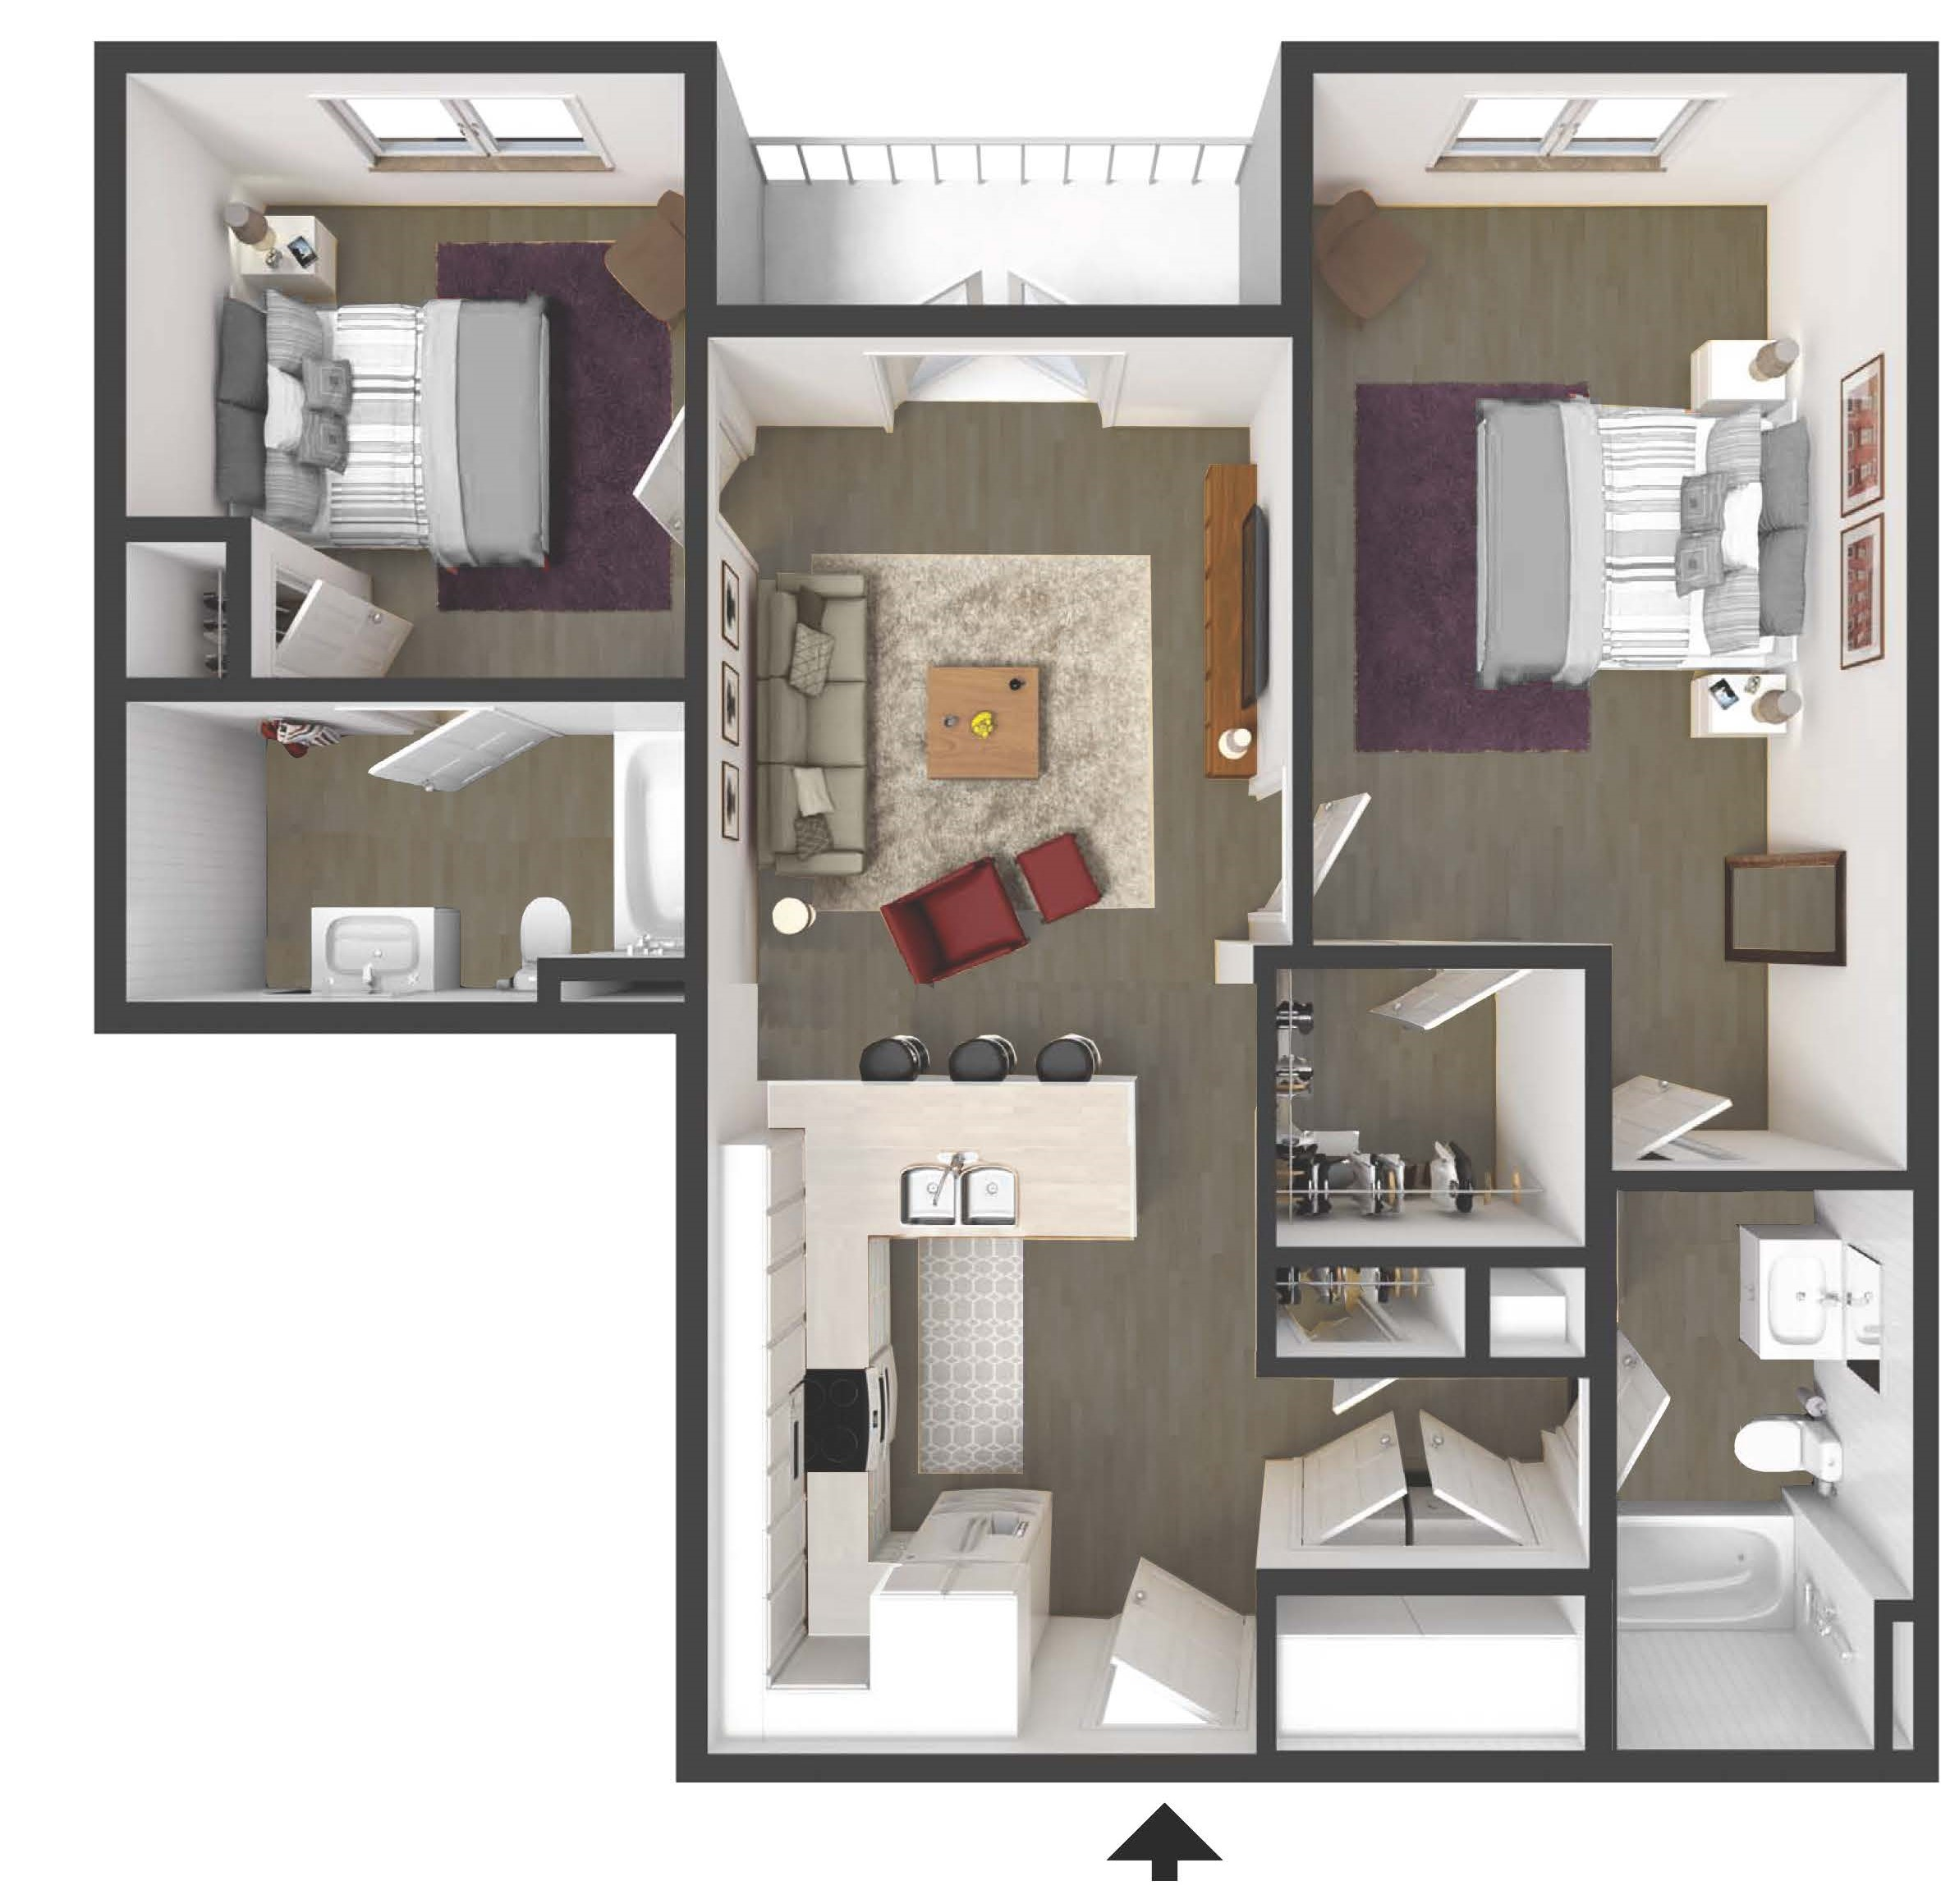 Two bedroom apartment at the Residences of Harlan Flats on the Wilmington Waterfront